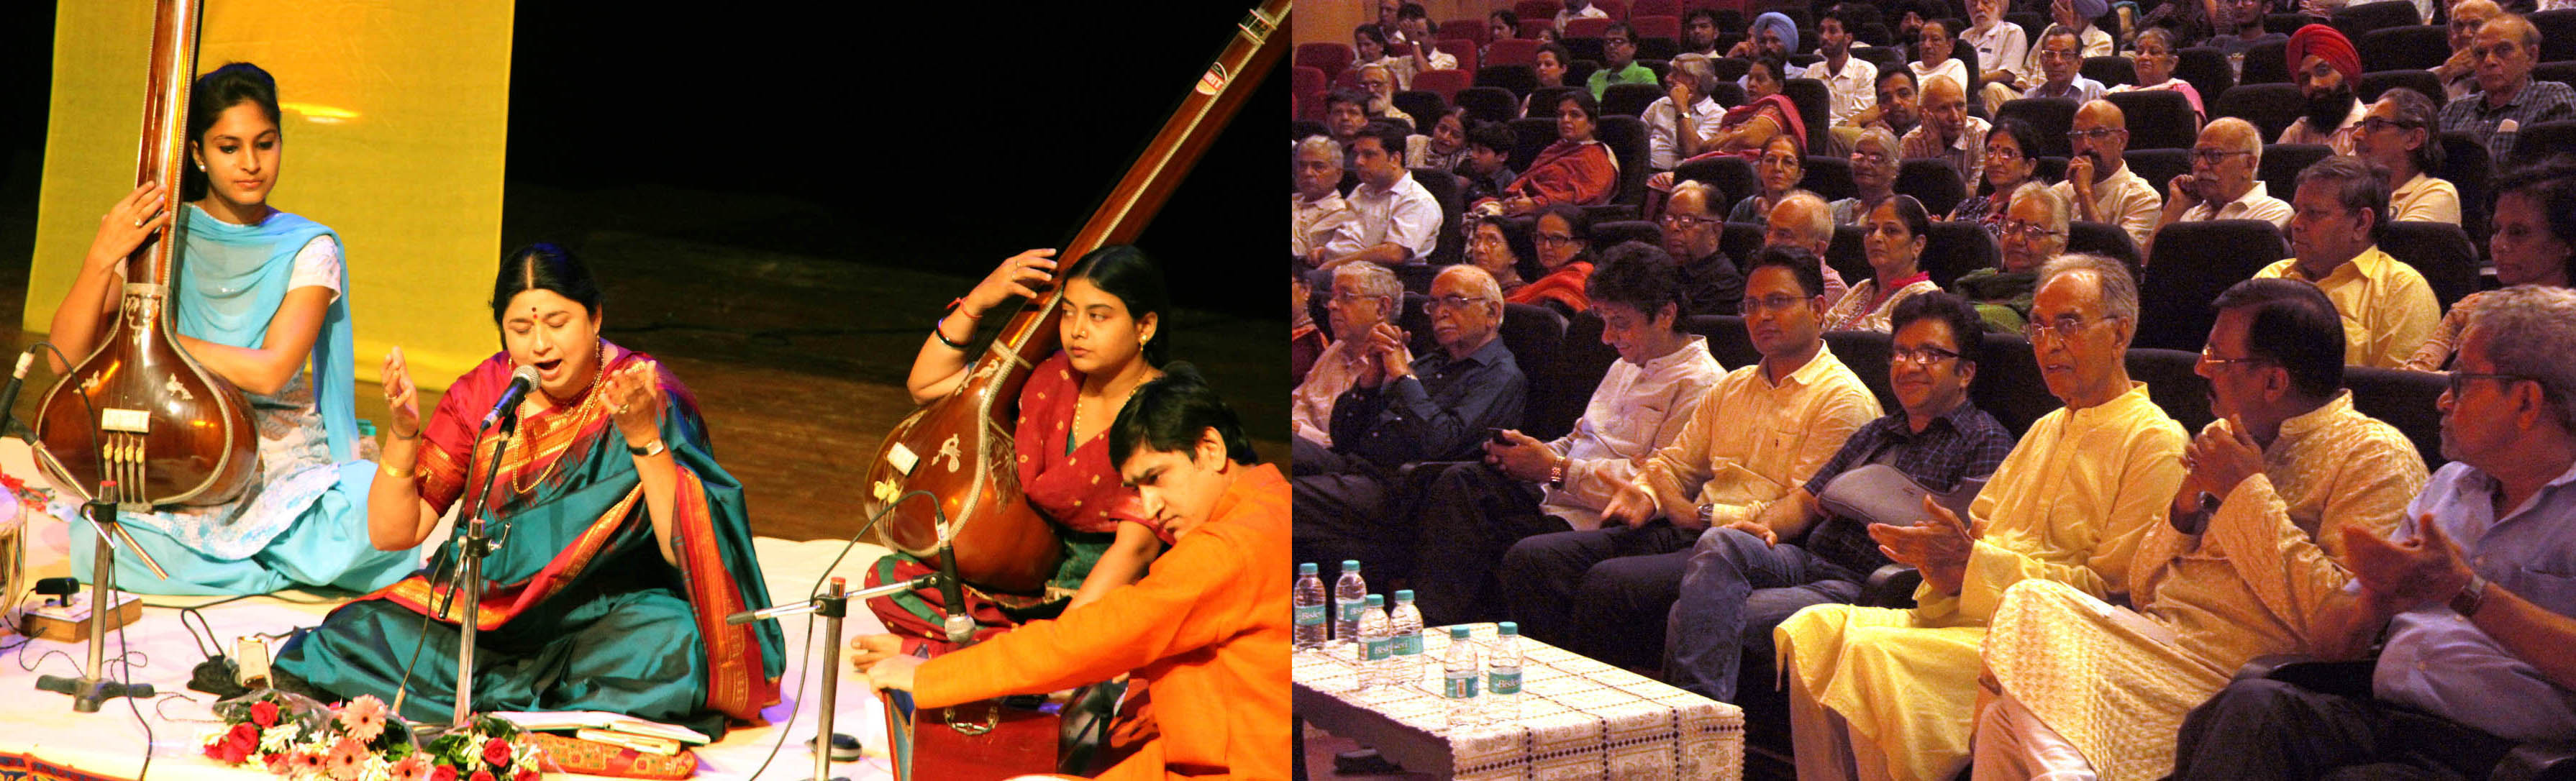 UT Home Secretary, Shri Anurag Agarwal alongwith senior officers witnessing the �Classical Music Concert� by Vidushi Kalapani Komkali at Tagore Theatre, Sector-18, Chandigarh on Thursday, July 21, 2016.